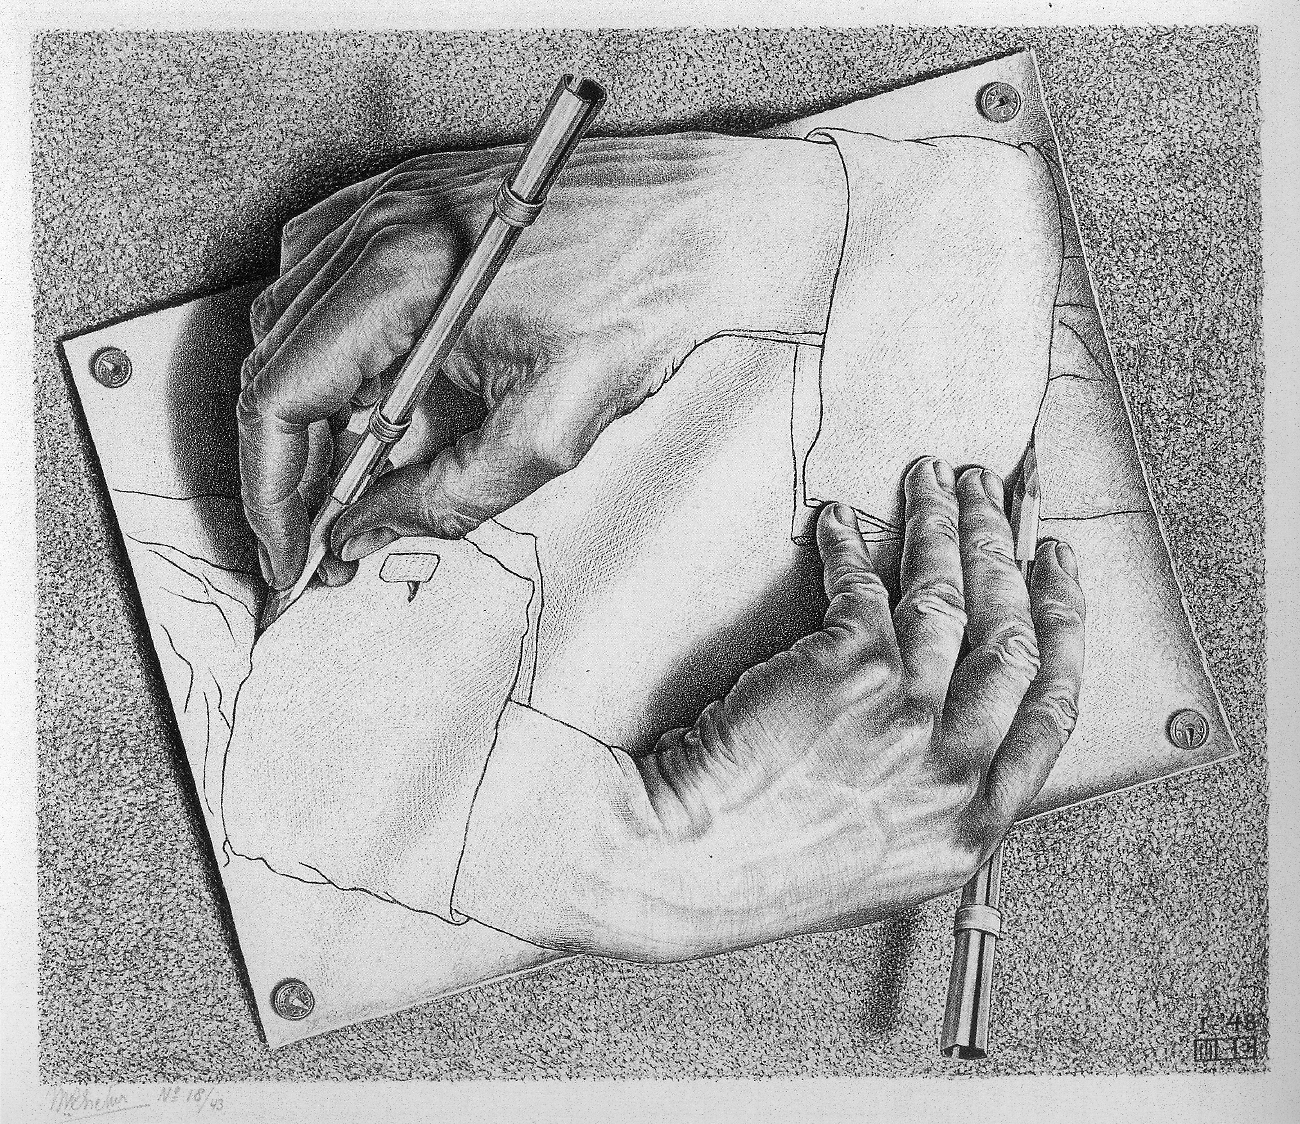 Drawing Hands, M. C. Escher (1948)